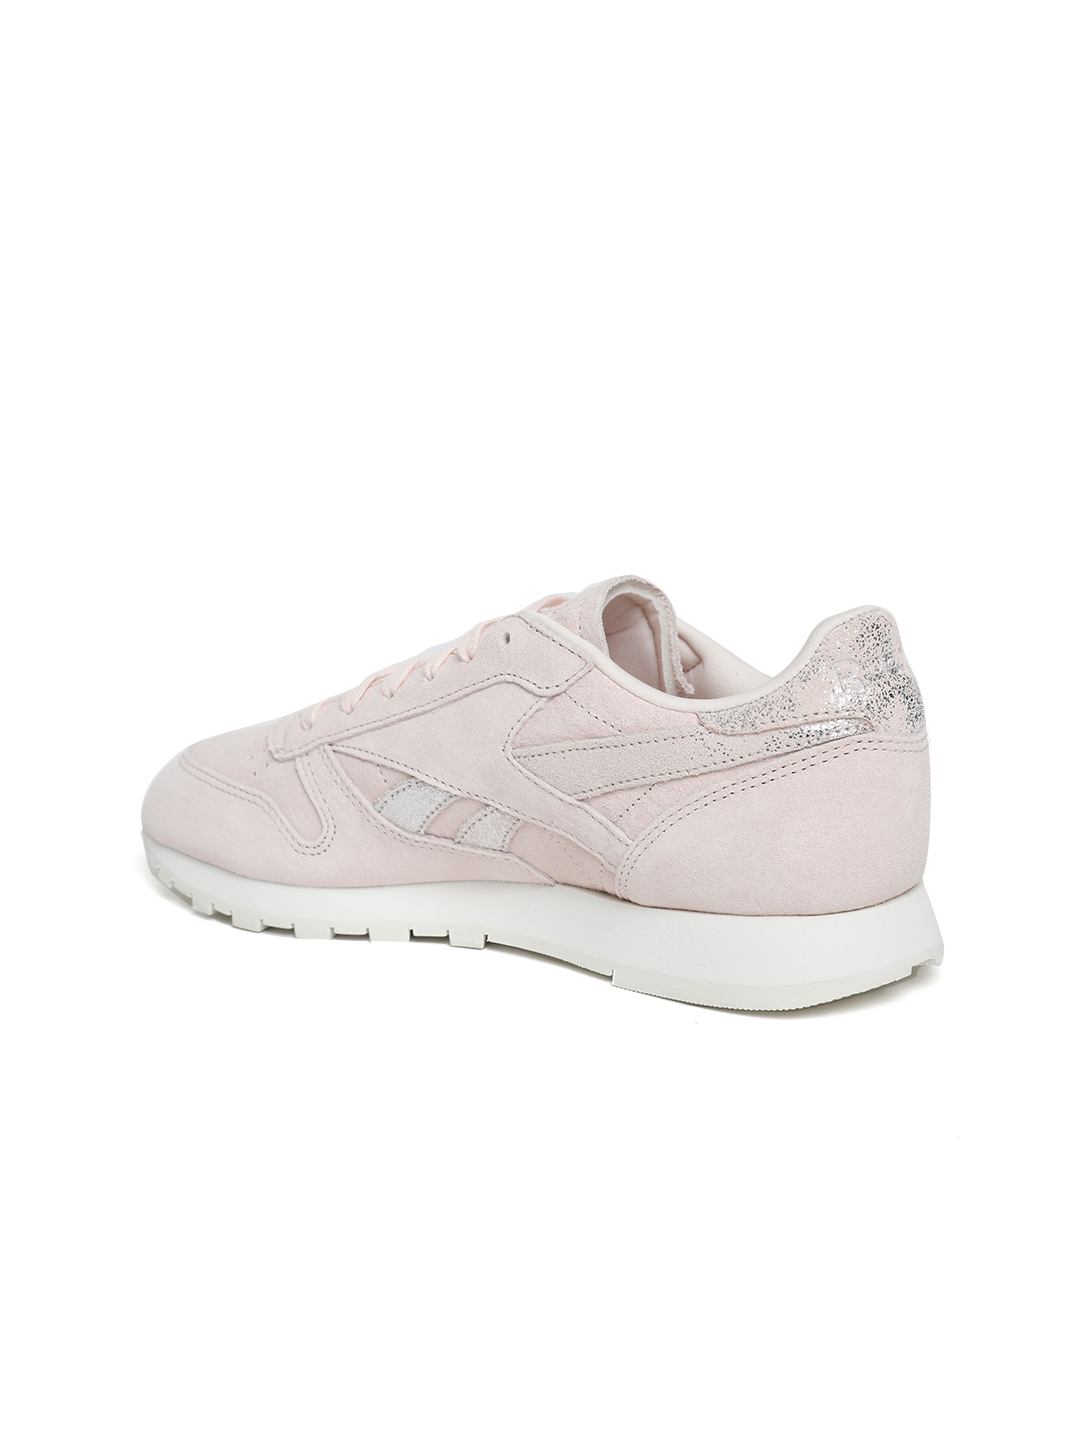 6322cb249c0 Buy Reebok Classic Women Pink CL Shimmer Leather Sneakers - Casual ...